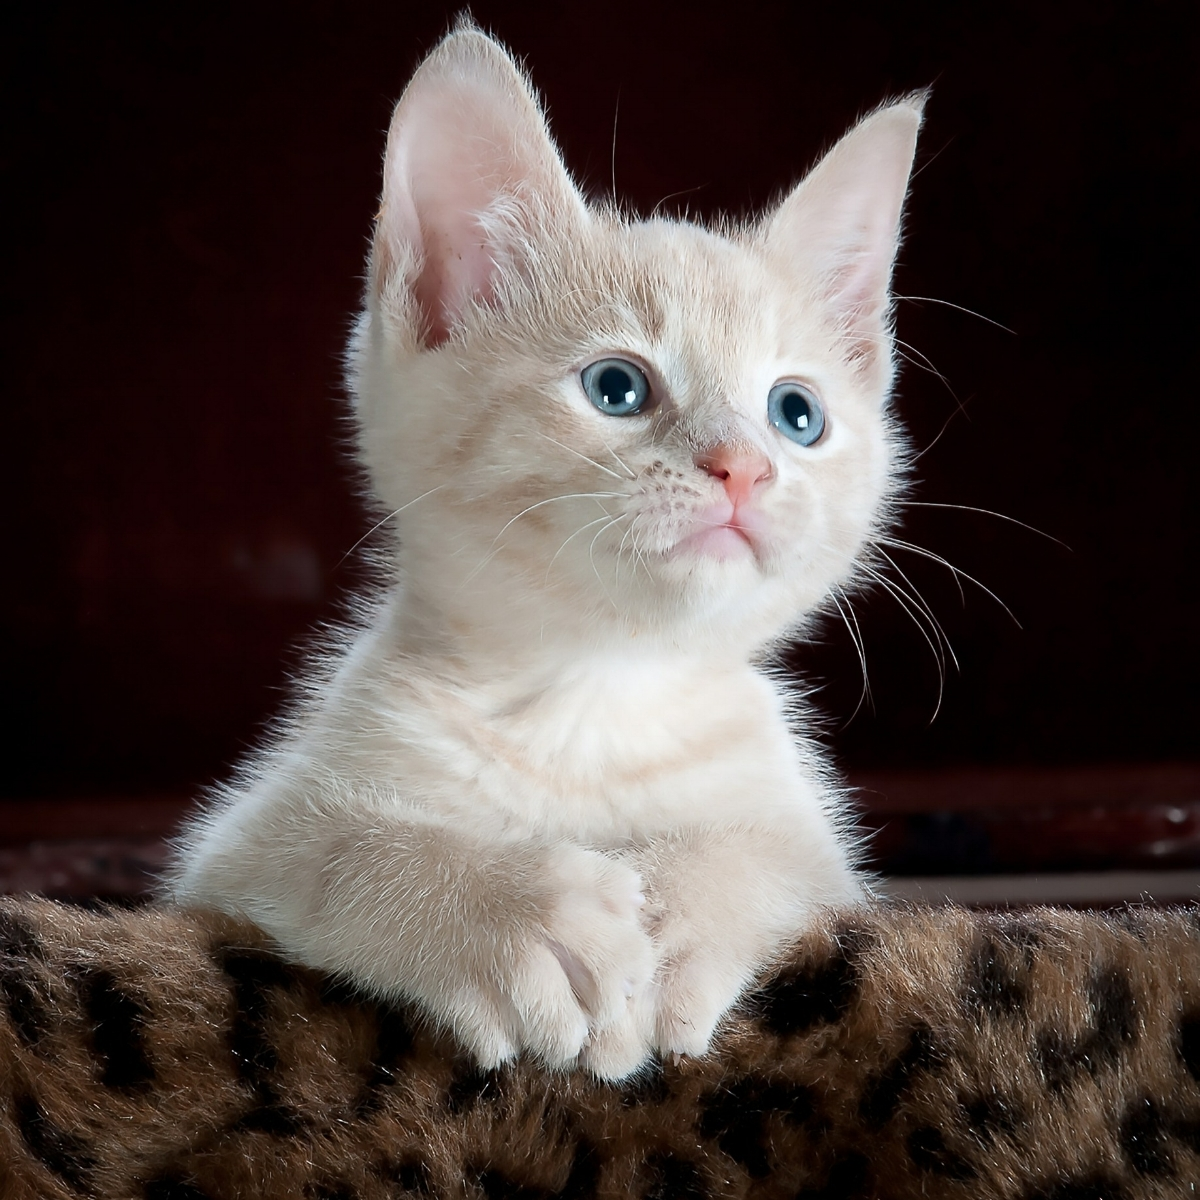 If this kitten isn't worrying about emergency talks with the Financial Conduct Authority over the impact of its collapse on existing customers, we have no idea what it's doing.